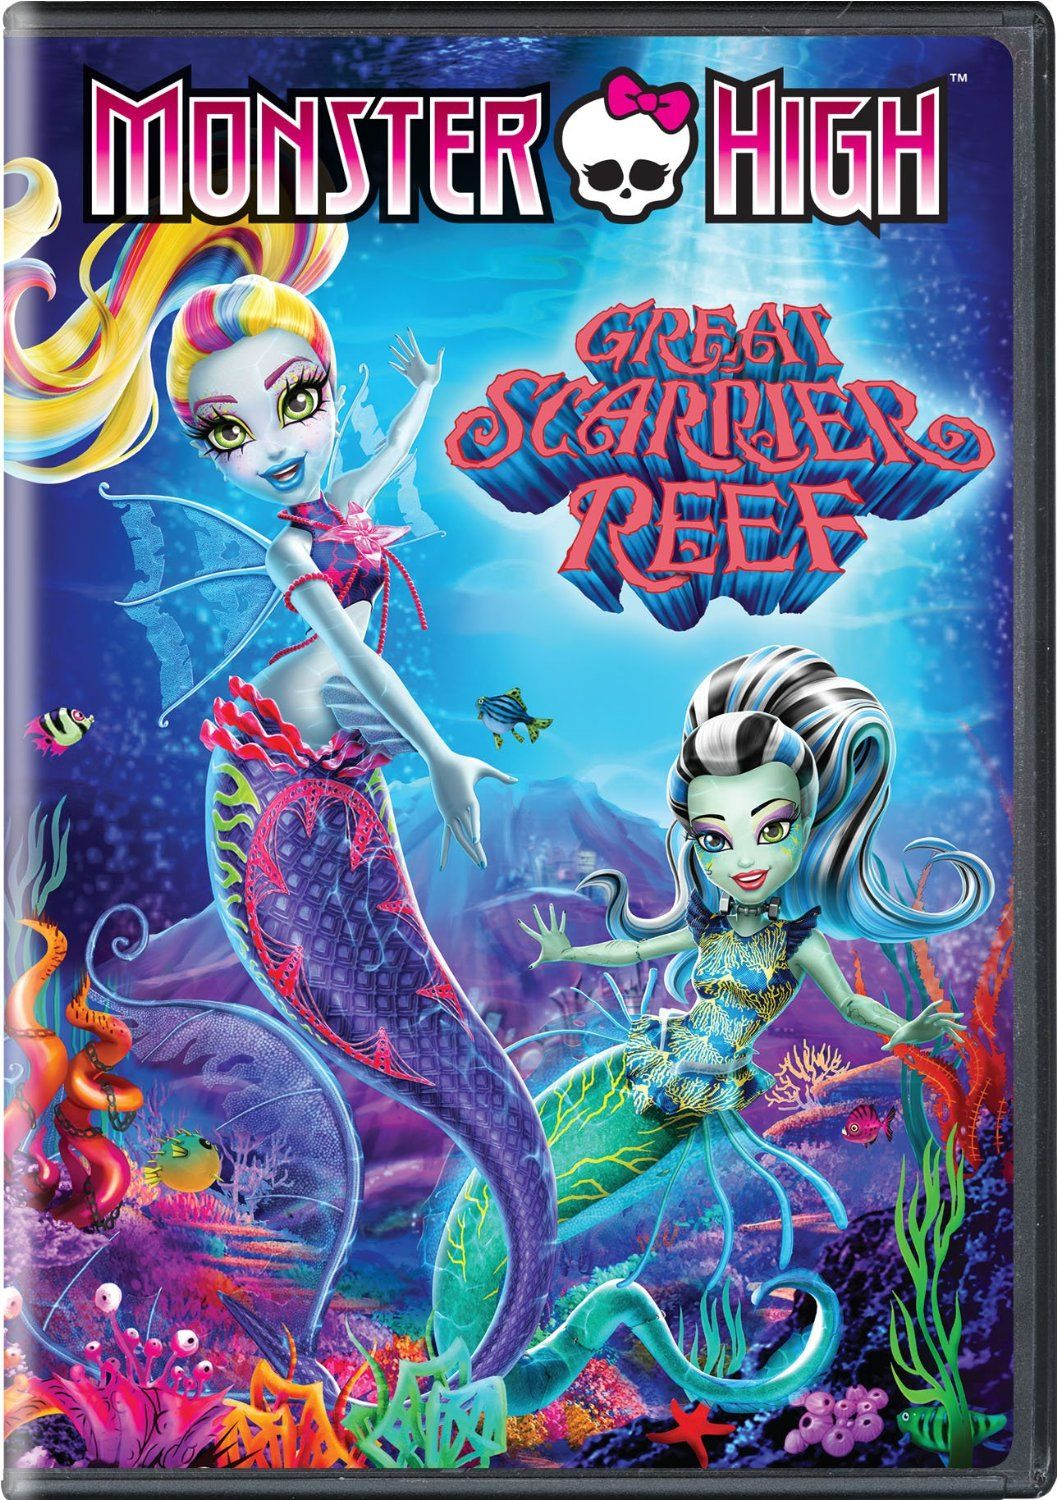 DVD & Bluray MONSTER HIGH GREAT SCARRIER REEF (2016